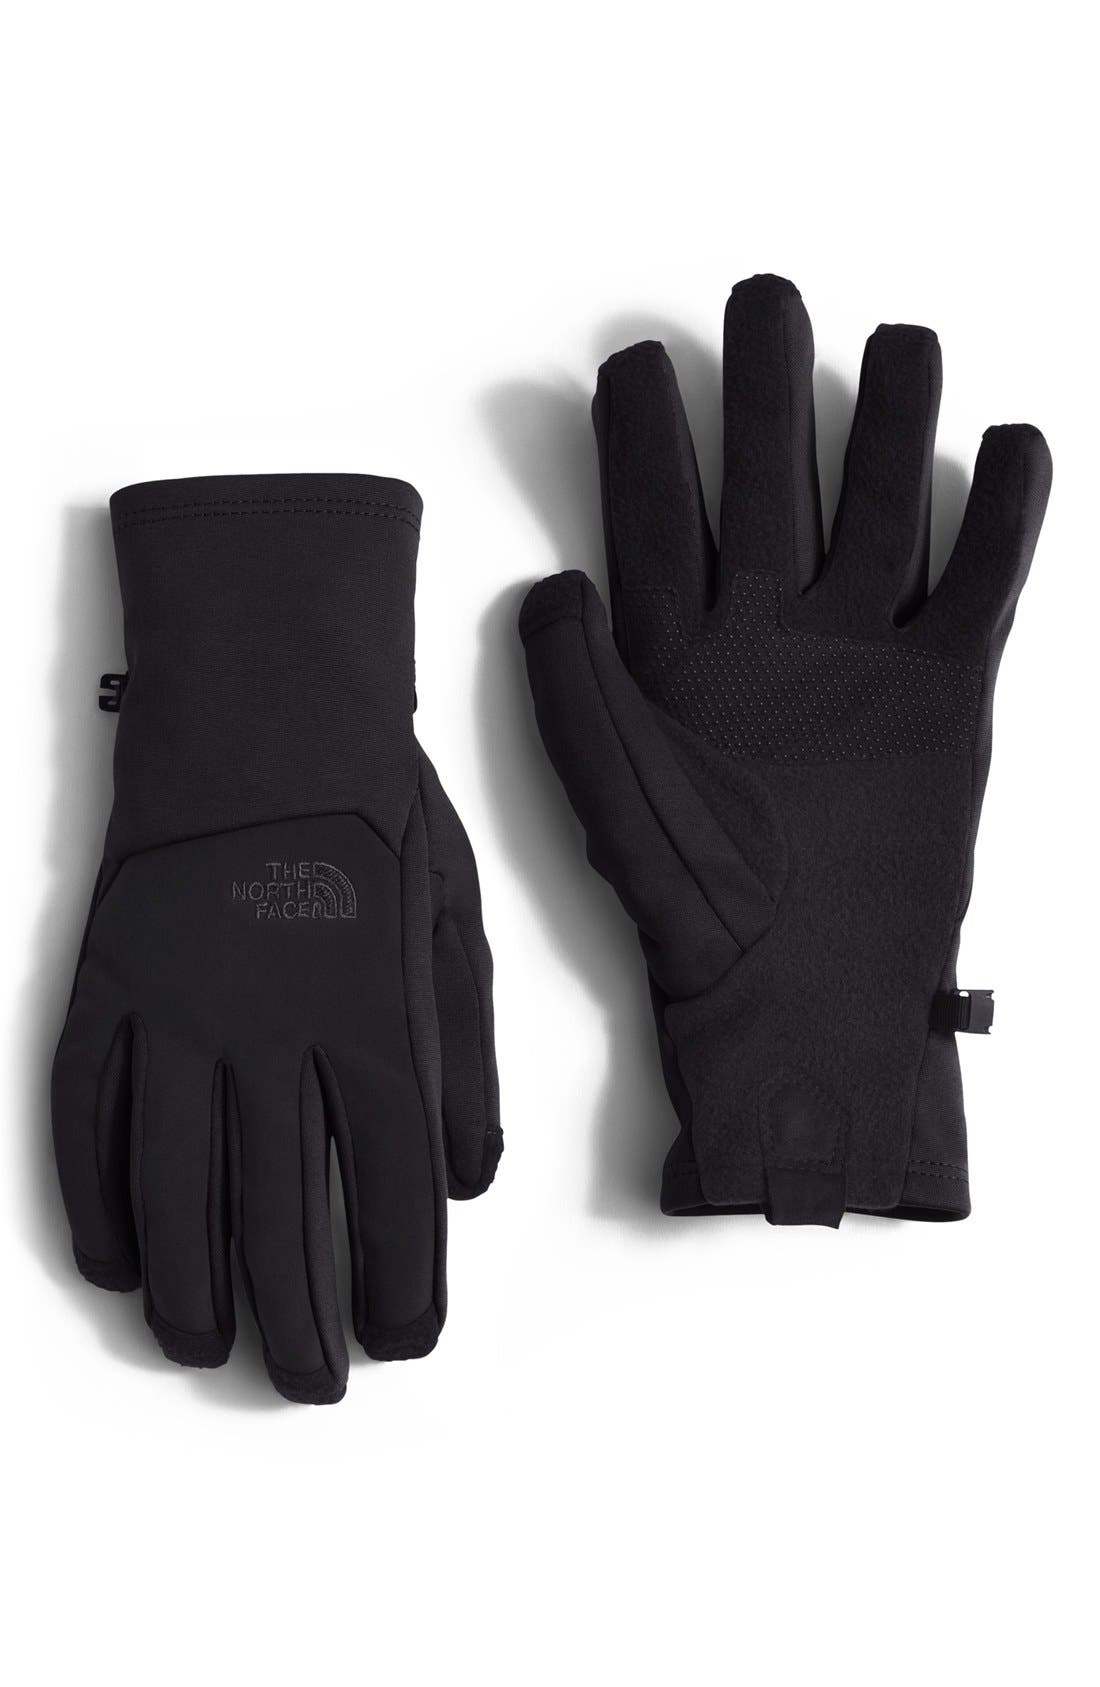 'CanyonWall E-Tip' Tech Gloves,                             Main thumbnail 1, color,                             North Face Black